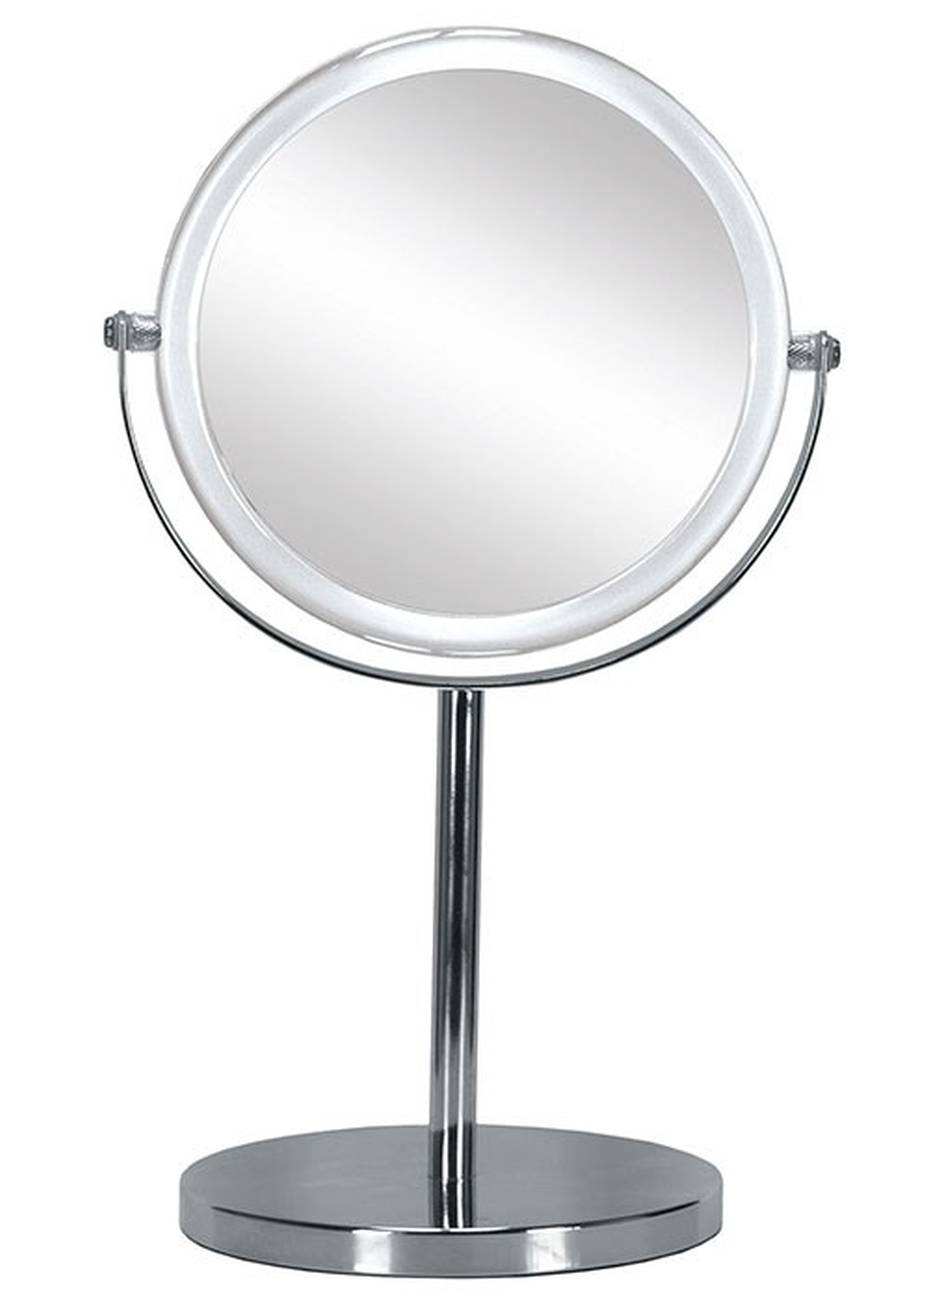 Kosmetikspiegel Transparent Mirror Acryl/Glas/Metall chromiert Clear Spiegel